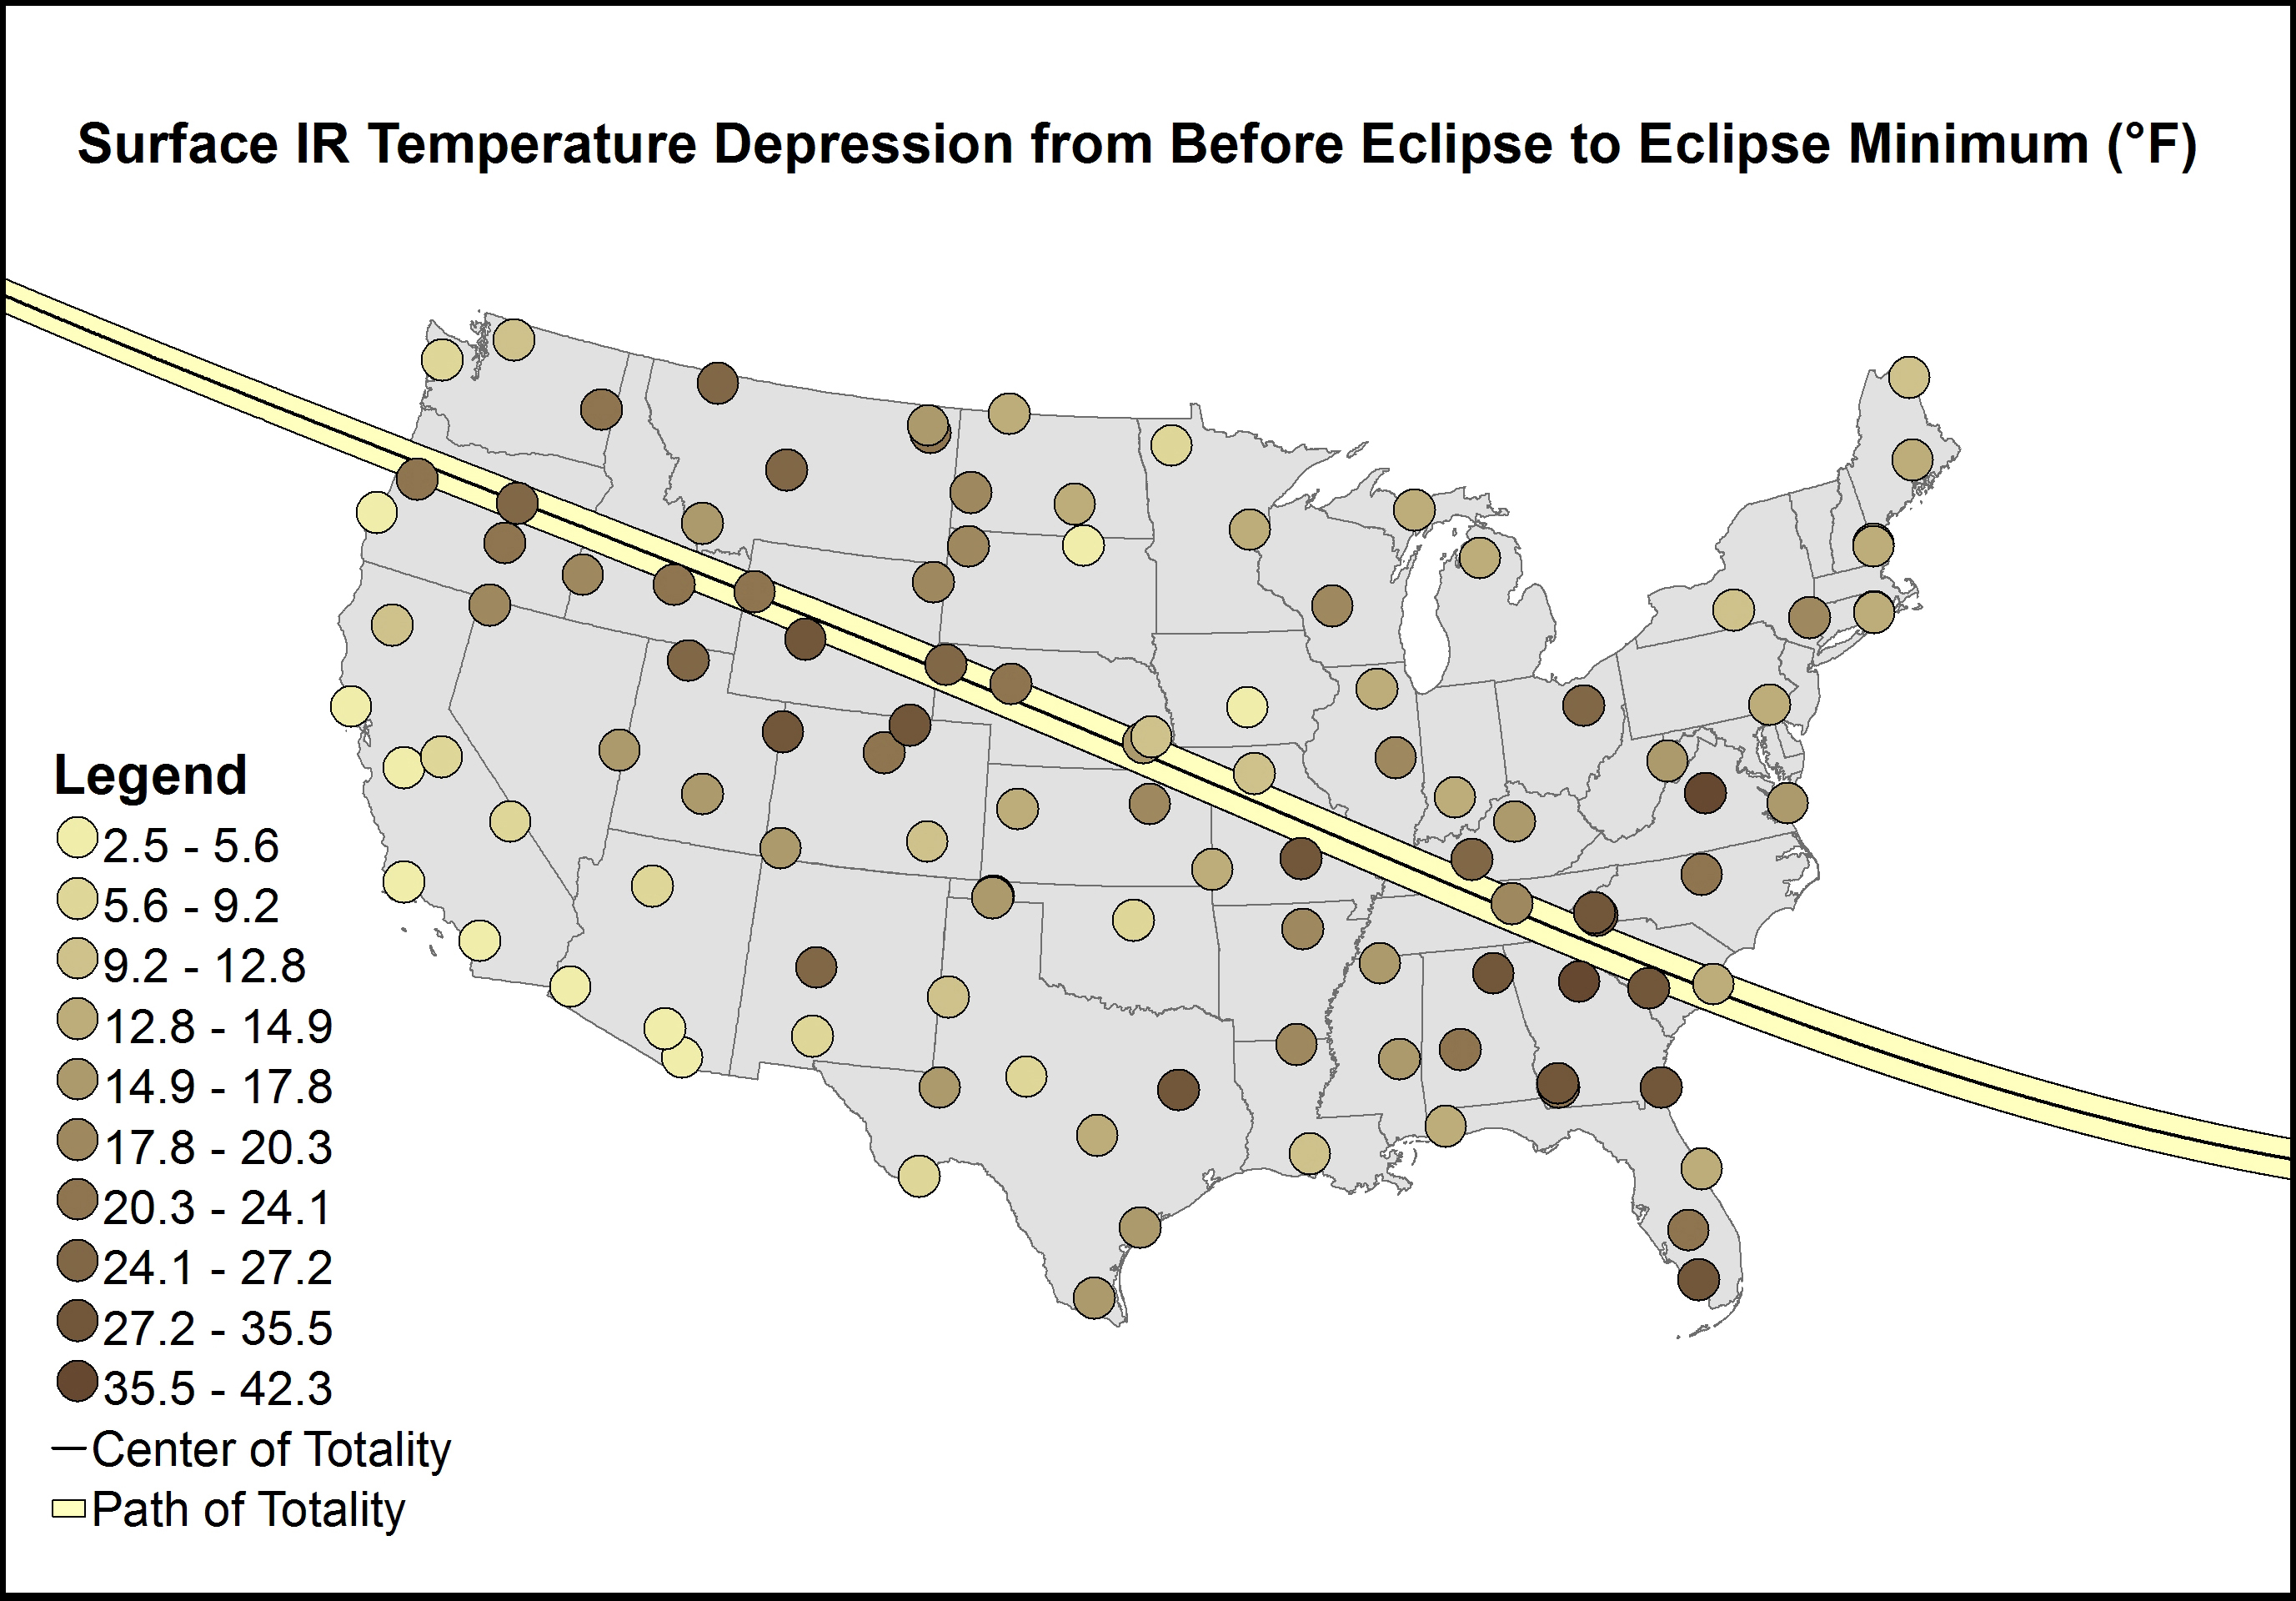 Graph of Surface IR Temperature Depression